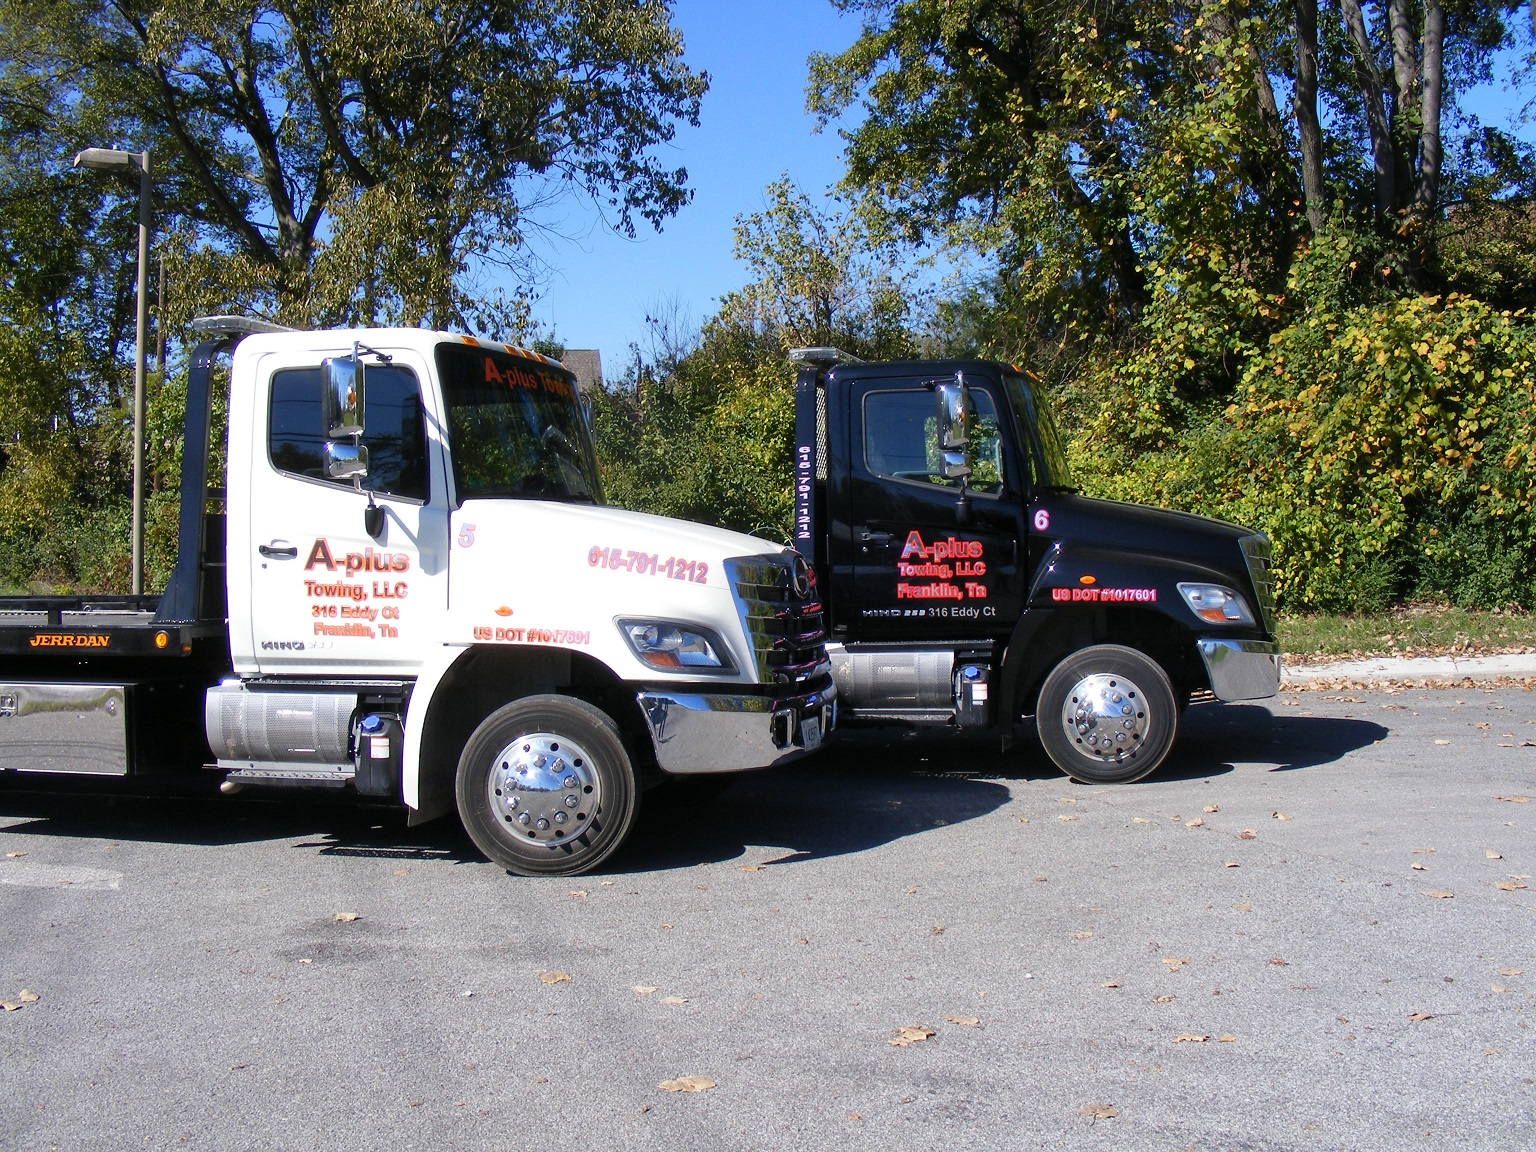 a-plus-towing-truck-logo-a